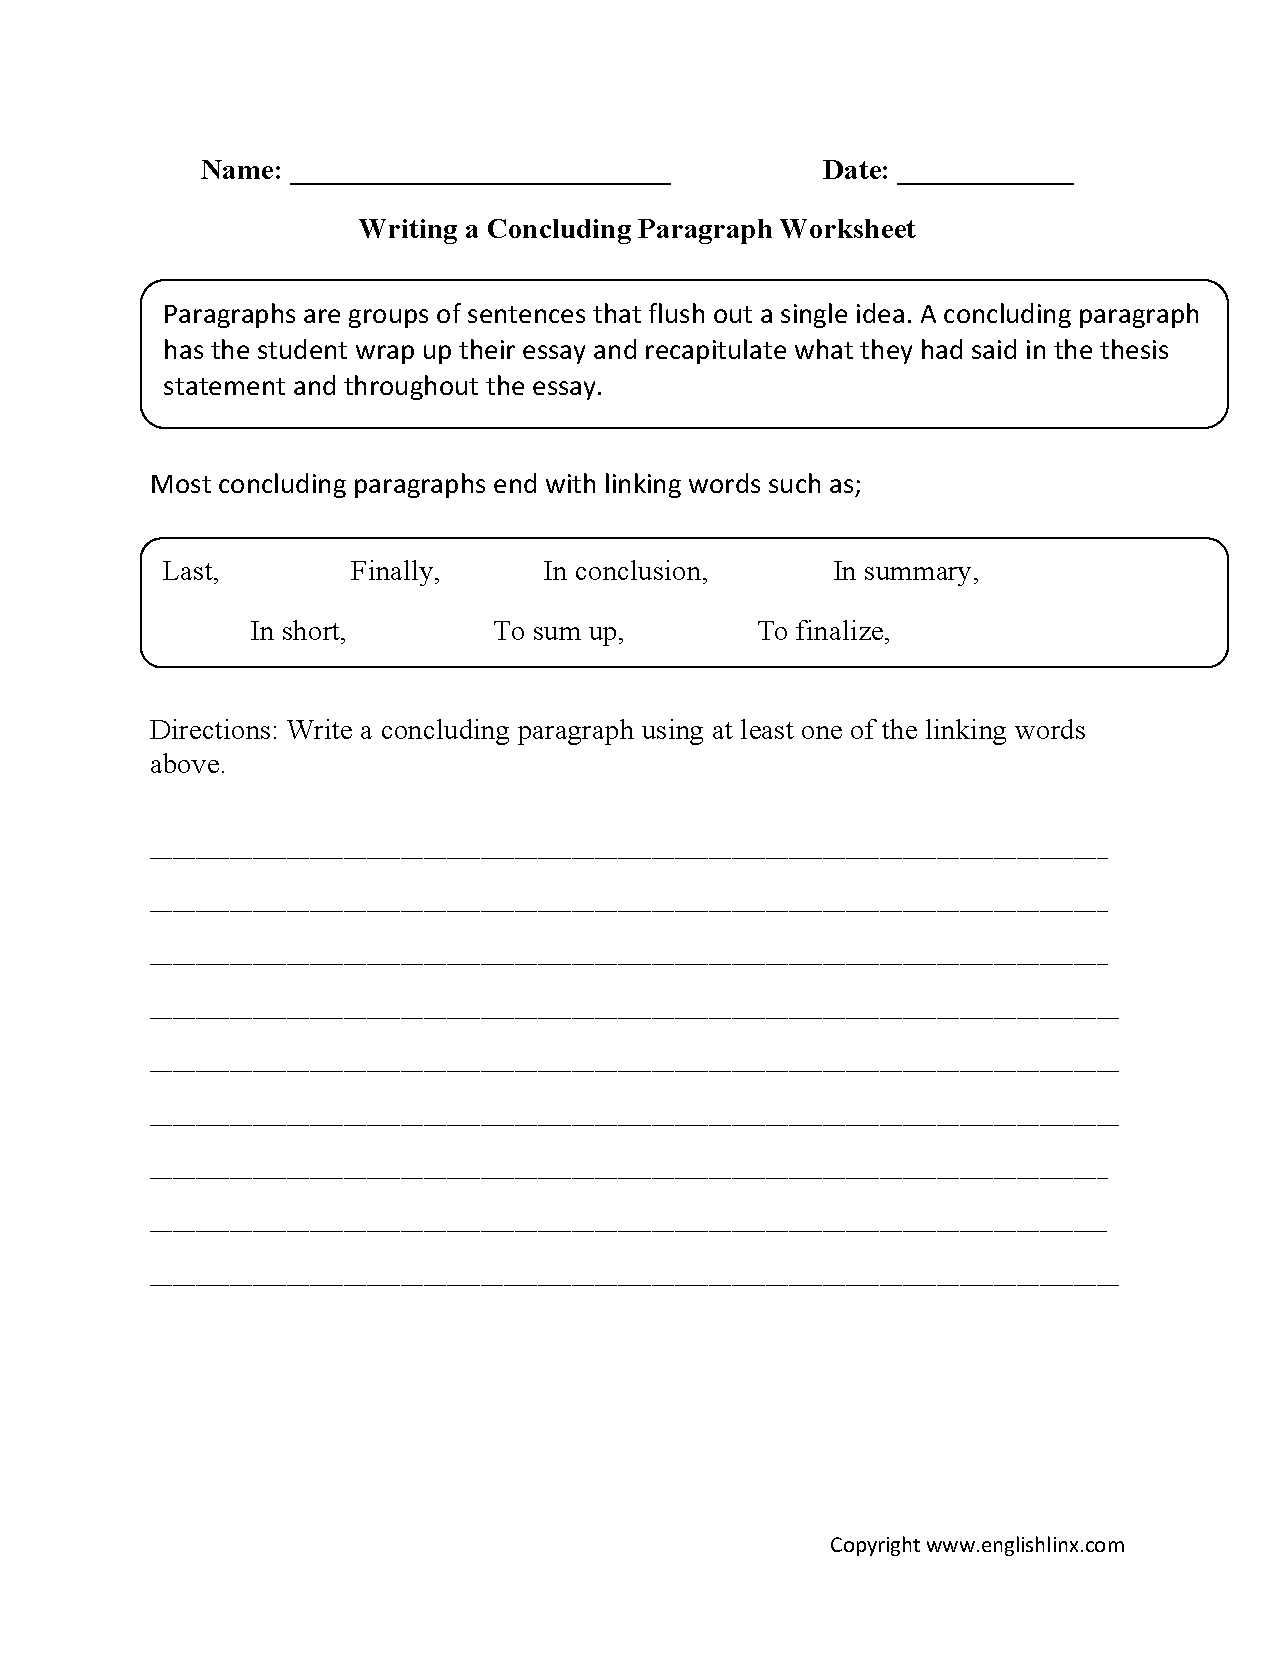 worksheet Transition Words Worksheet writing transition words ninja turtletechrepairs co paragraph worksheets